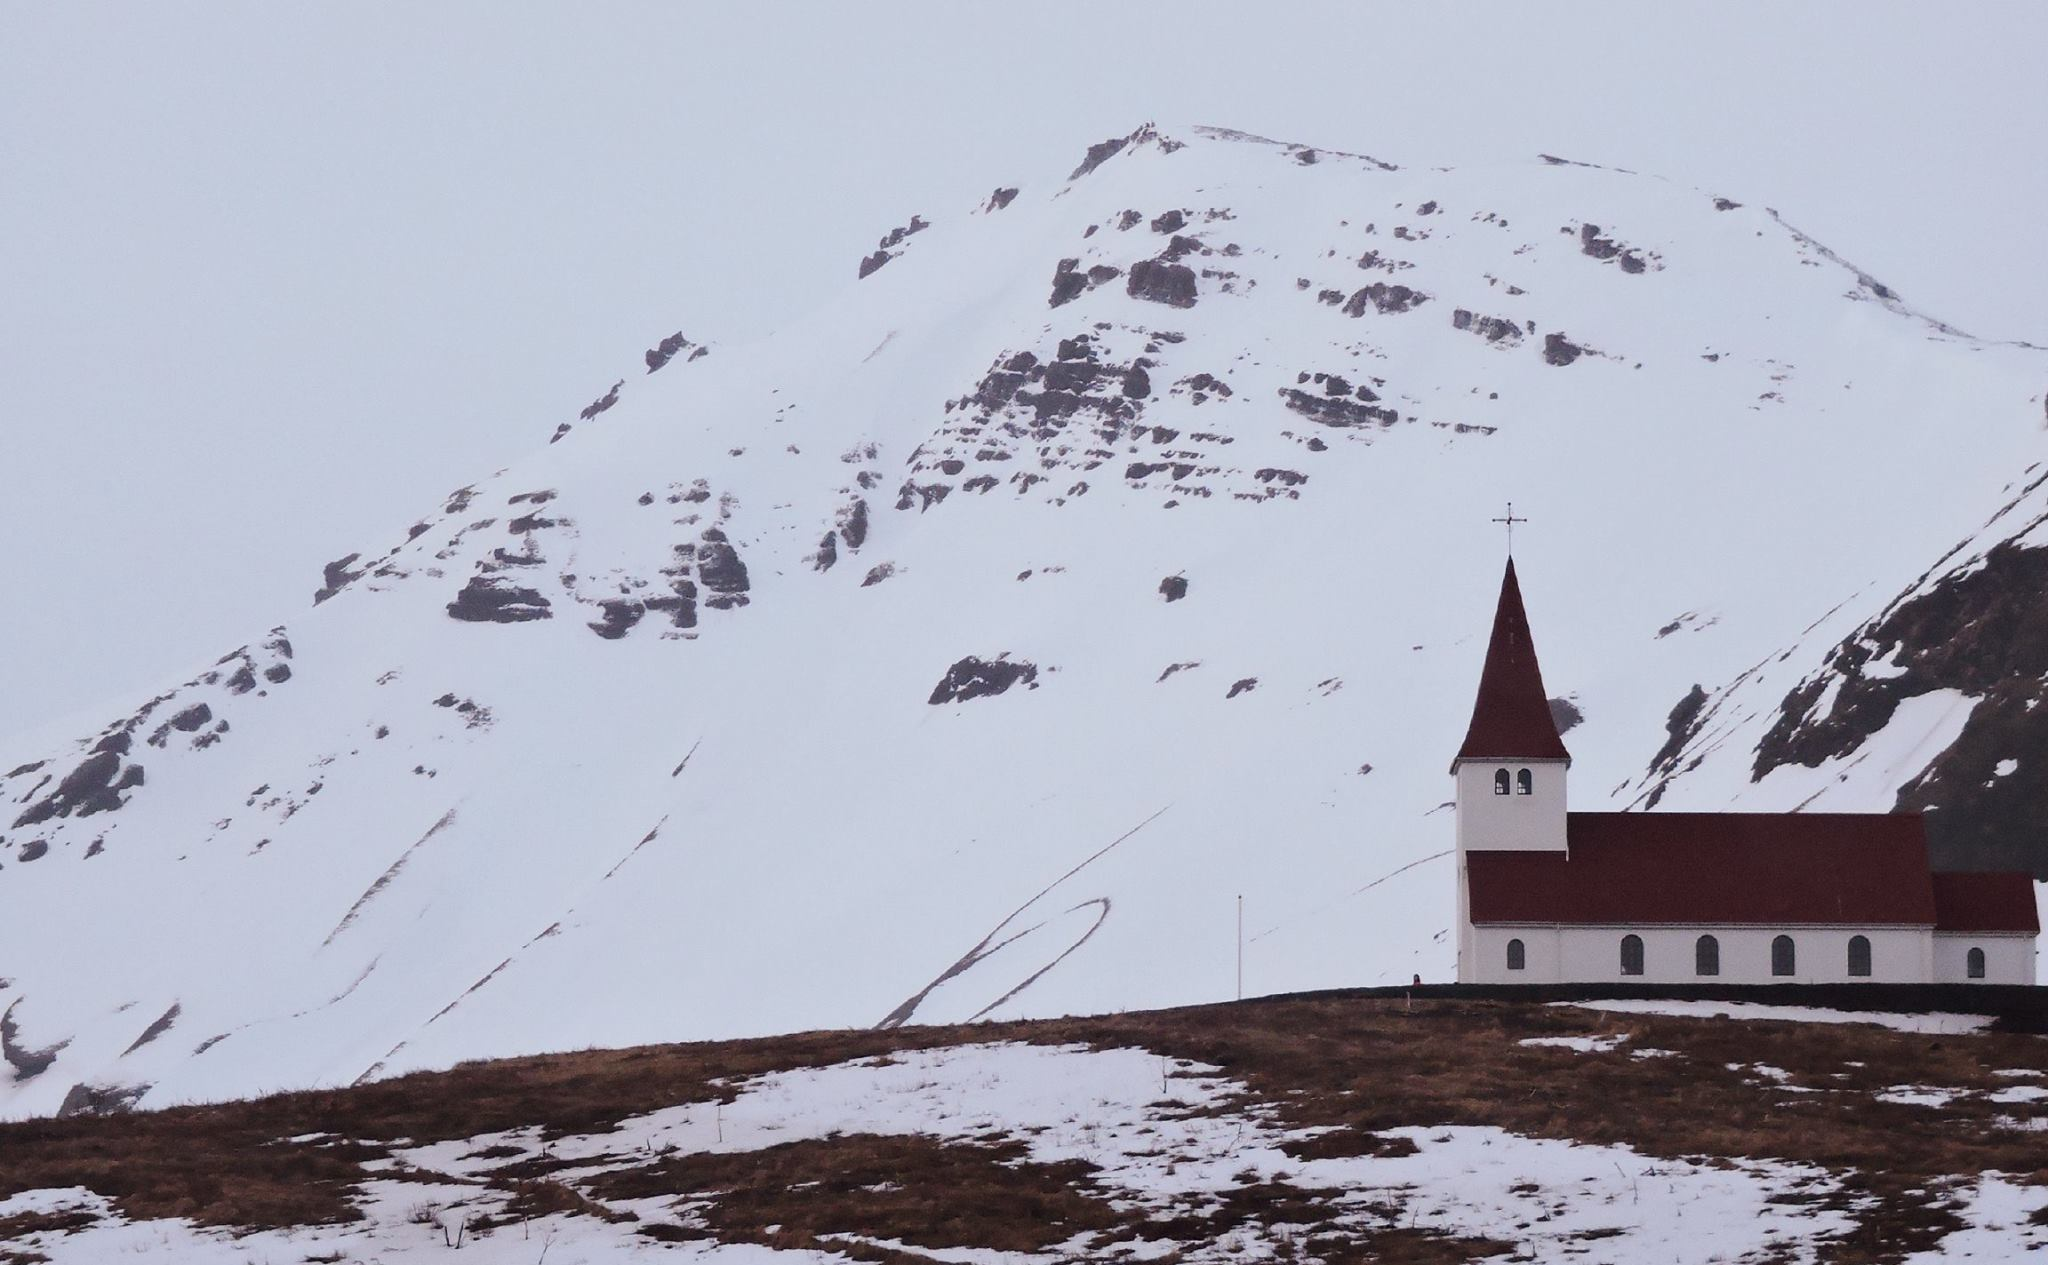 A March Adventure in Iceland Pt. 3